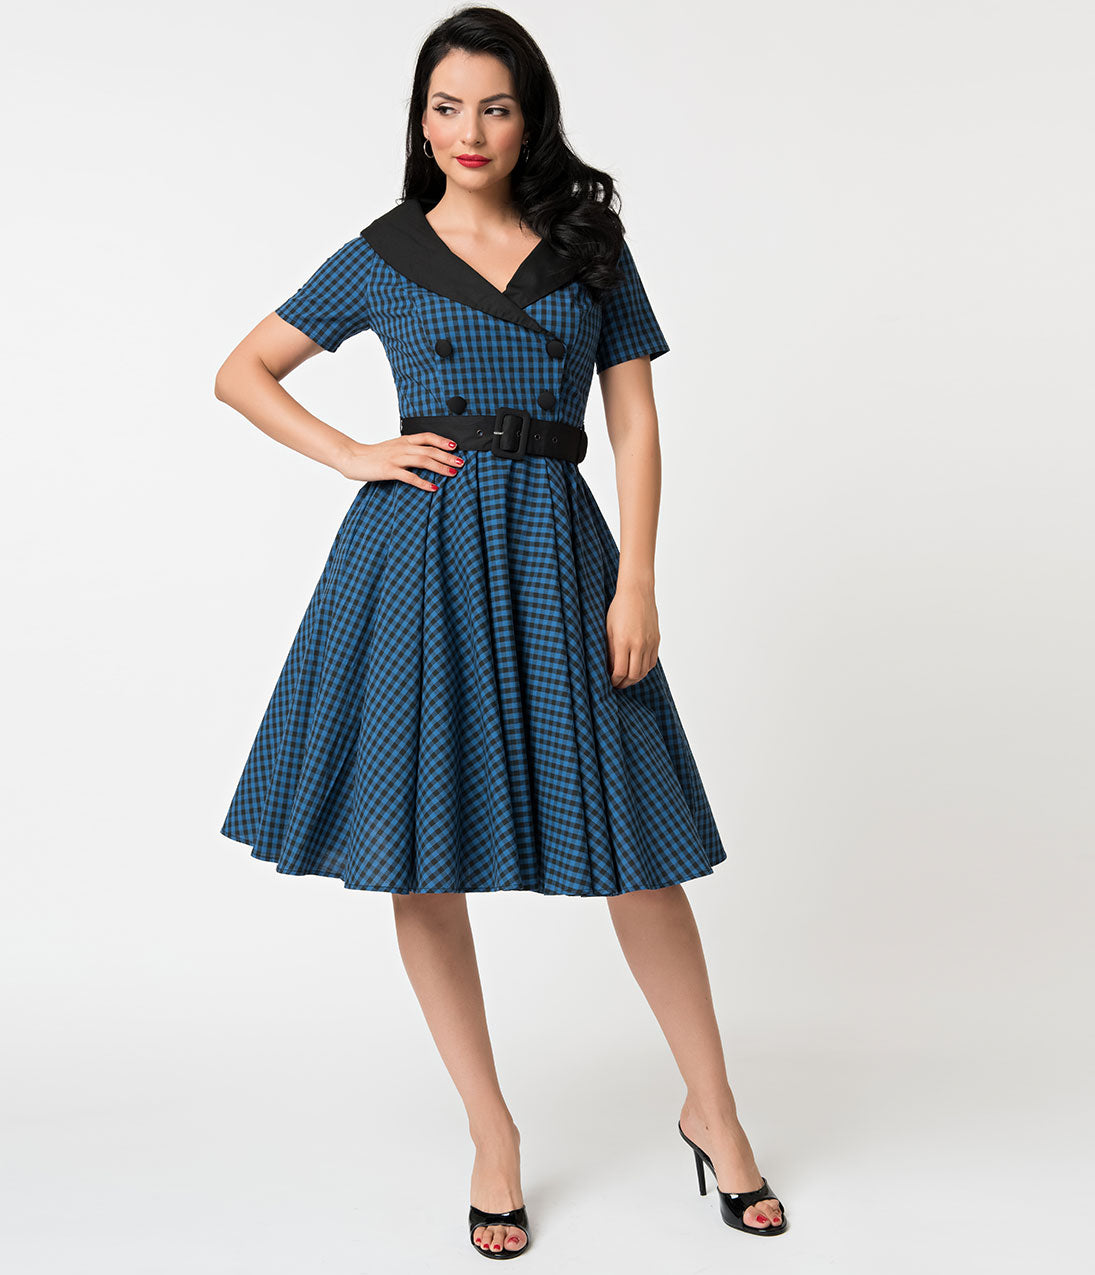 1950s Housewife Dress | 50s Day Dresses Hell Bunny 1950S Style Navy  Black Gingham Bridget Swing Dress $59.00 AT vintagedancer.com